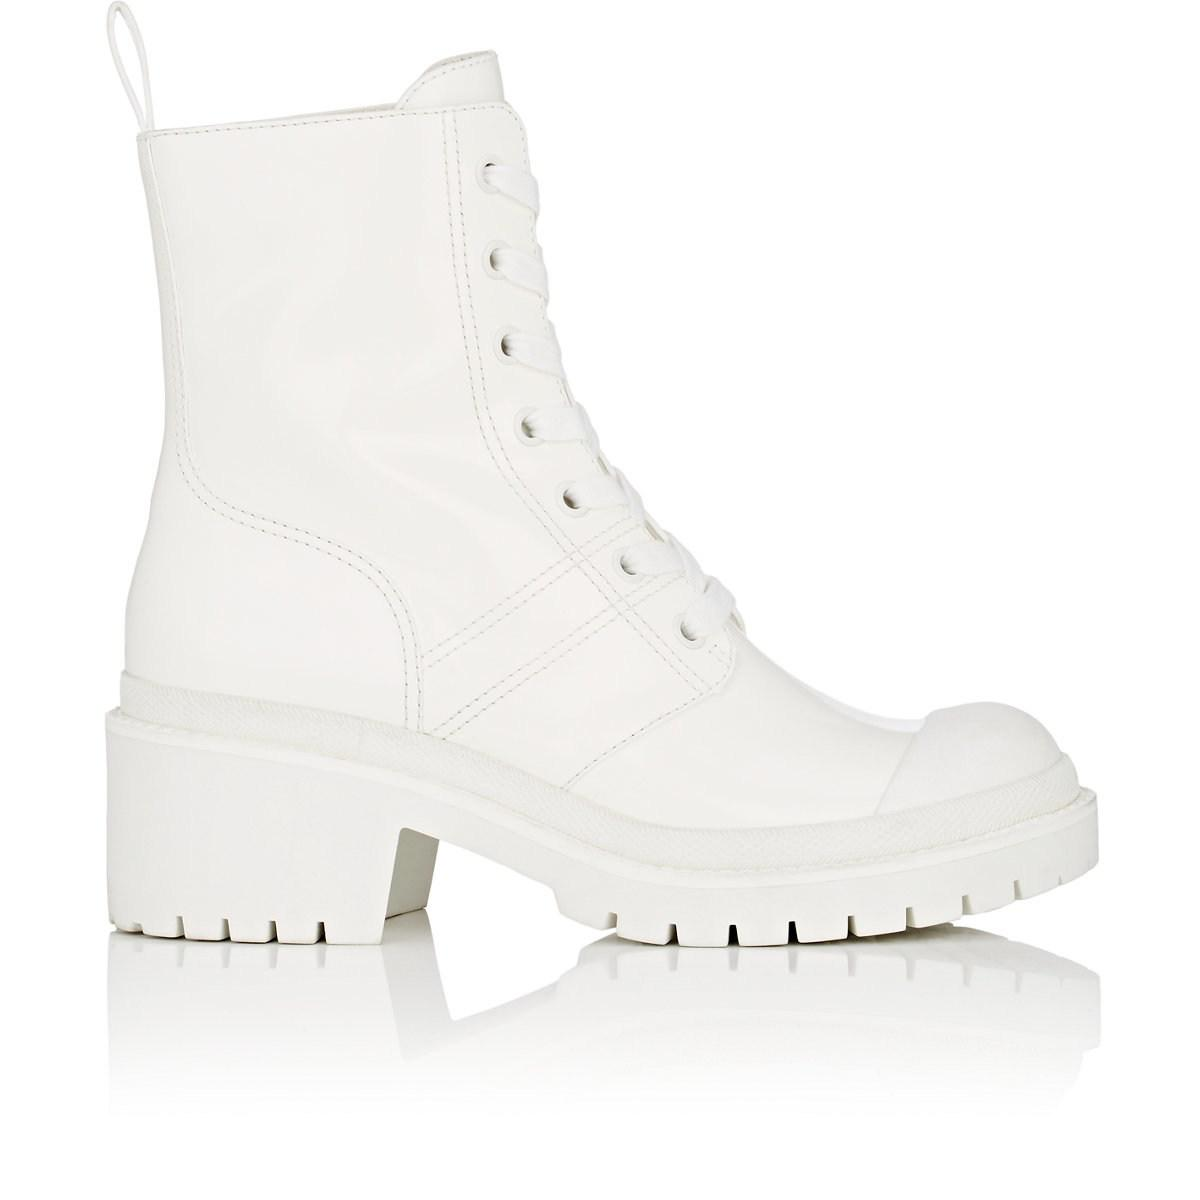 Bristol Glossed-leather Ankle Boots - White Marc Jacobs SqiNniU